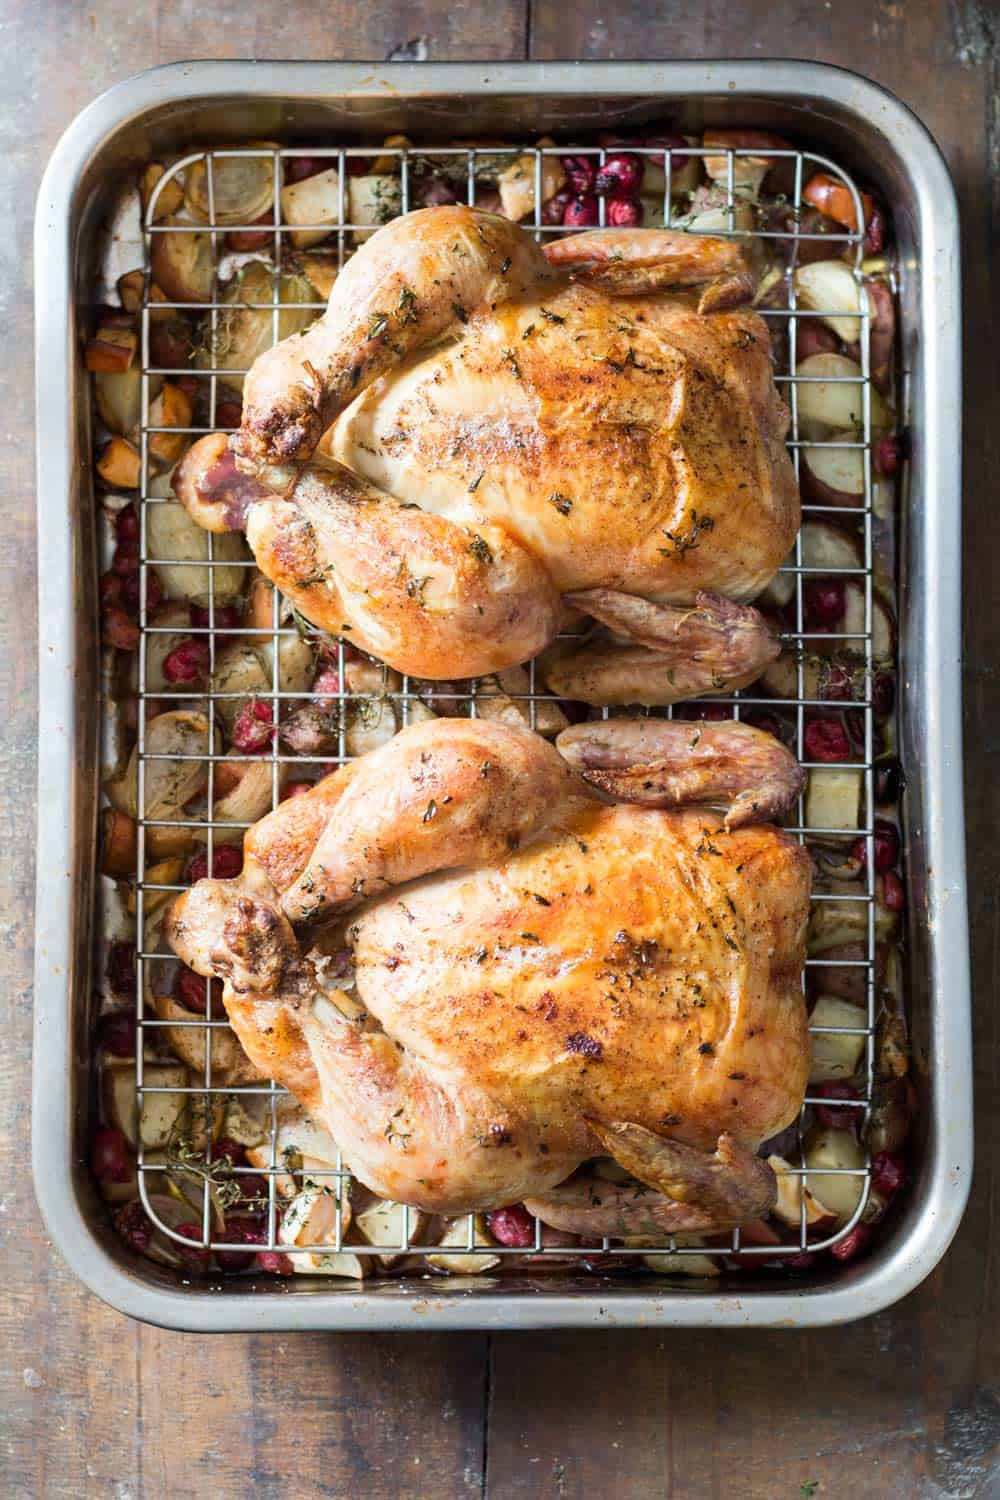 Whole roasted chickens